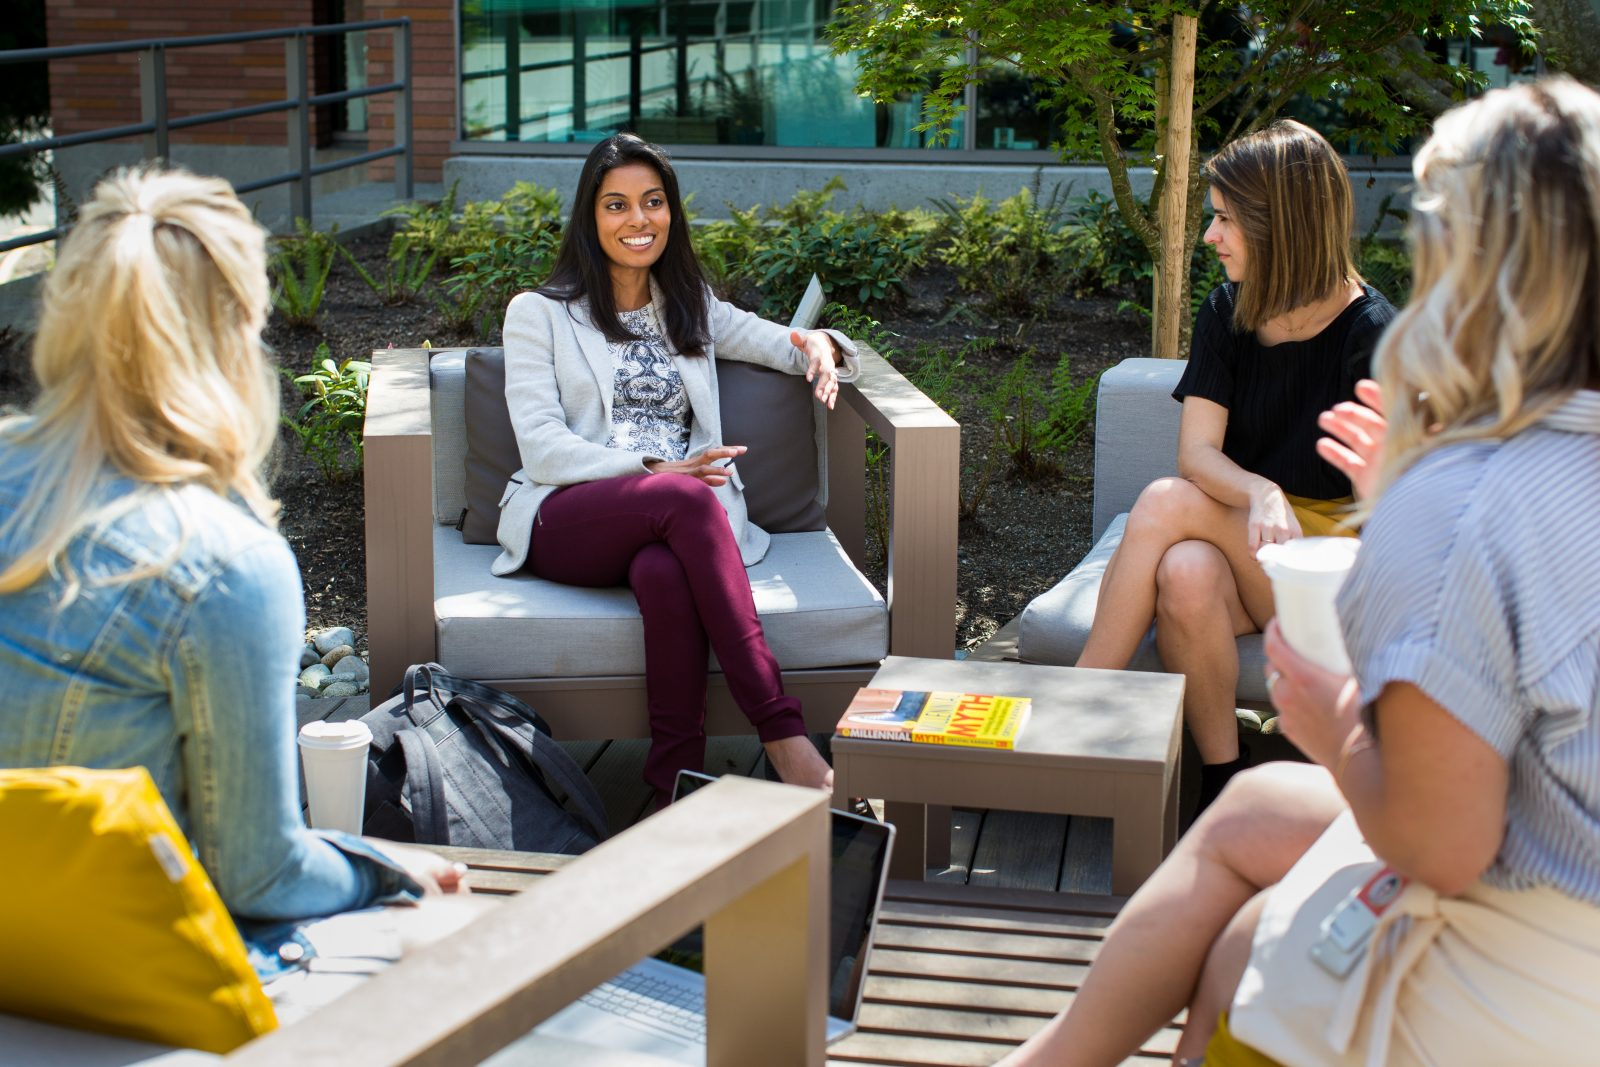 """Crystal Kadakia, founder of Invati Consulting and author of """"The Millennial Myth: Transforming Misunderstanding Into Workplace Breakthroughs"""" is photographed on the campus of Microsoft in Redmond, WA on Thursday, April 26, 2018.  (Photos by Dan DeLong)"""